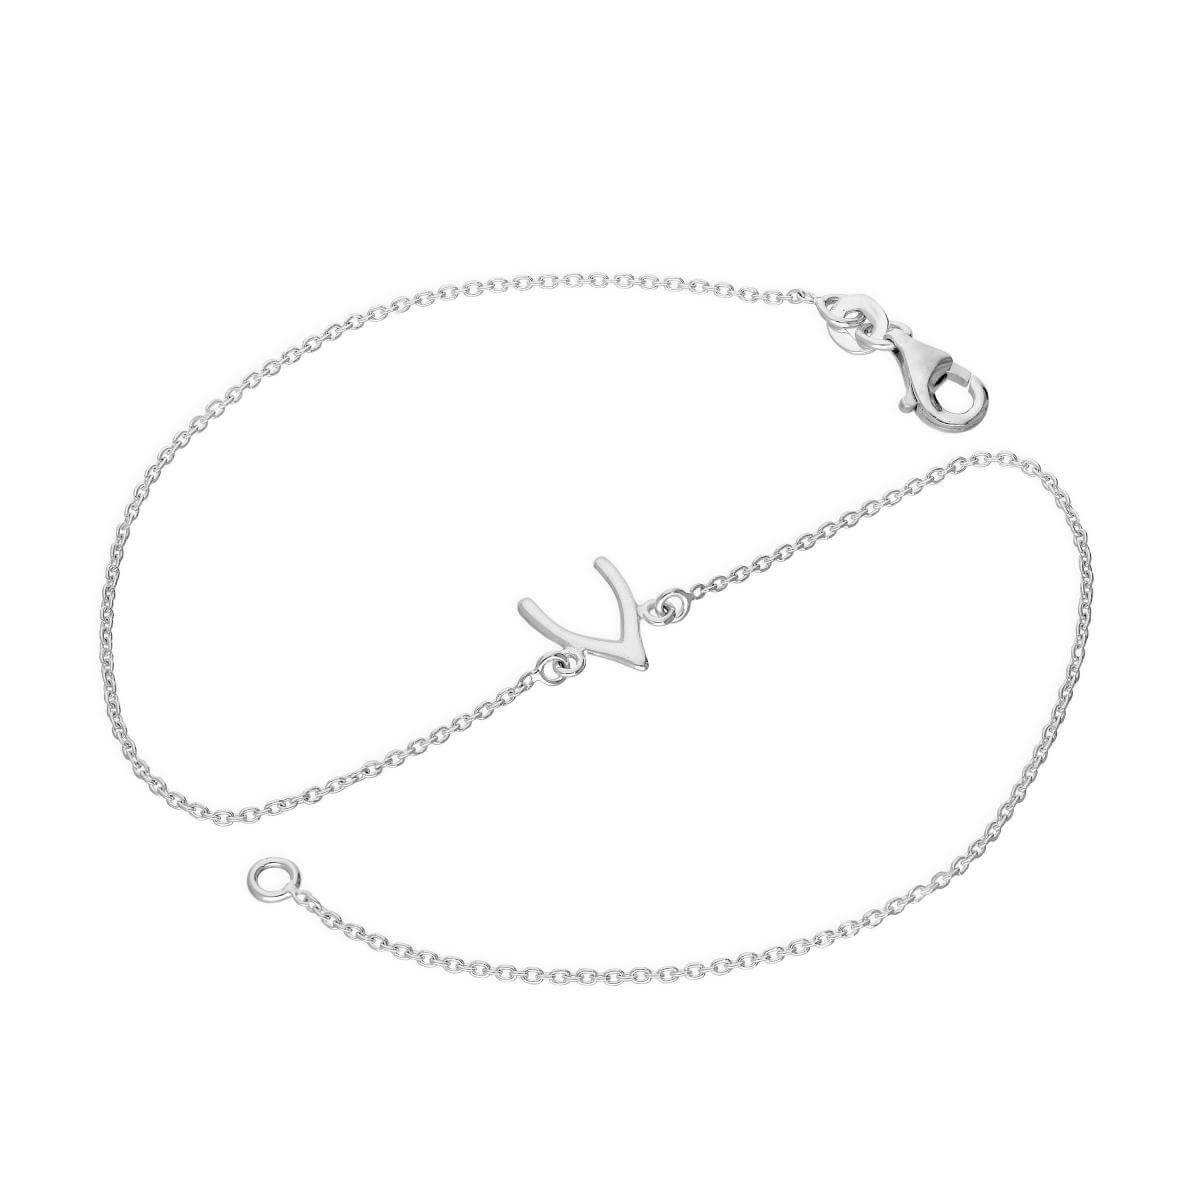 stars style designer s eve addiction sterling anklet inch silver